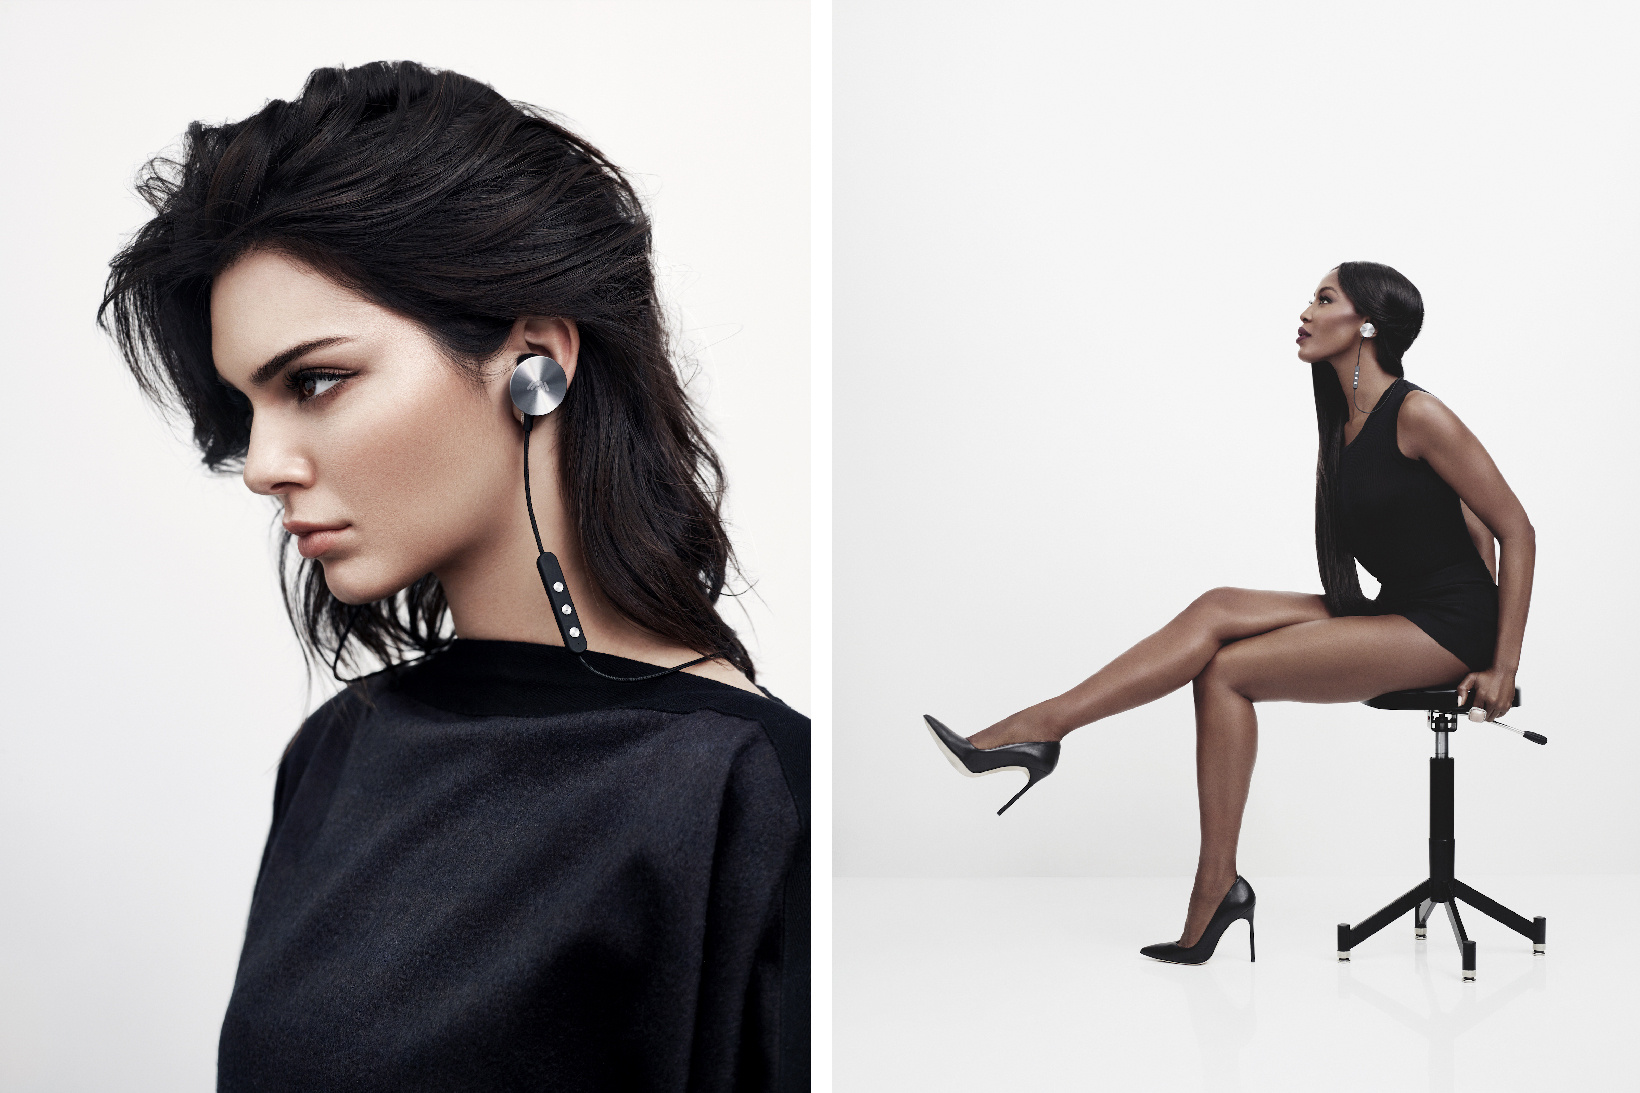 wiil-i-am-i-am-buttons-campaign-kendall-jenner-naomi-campbell-2